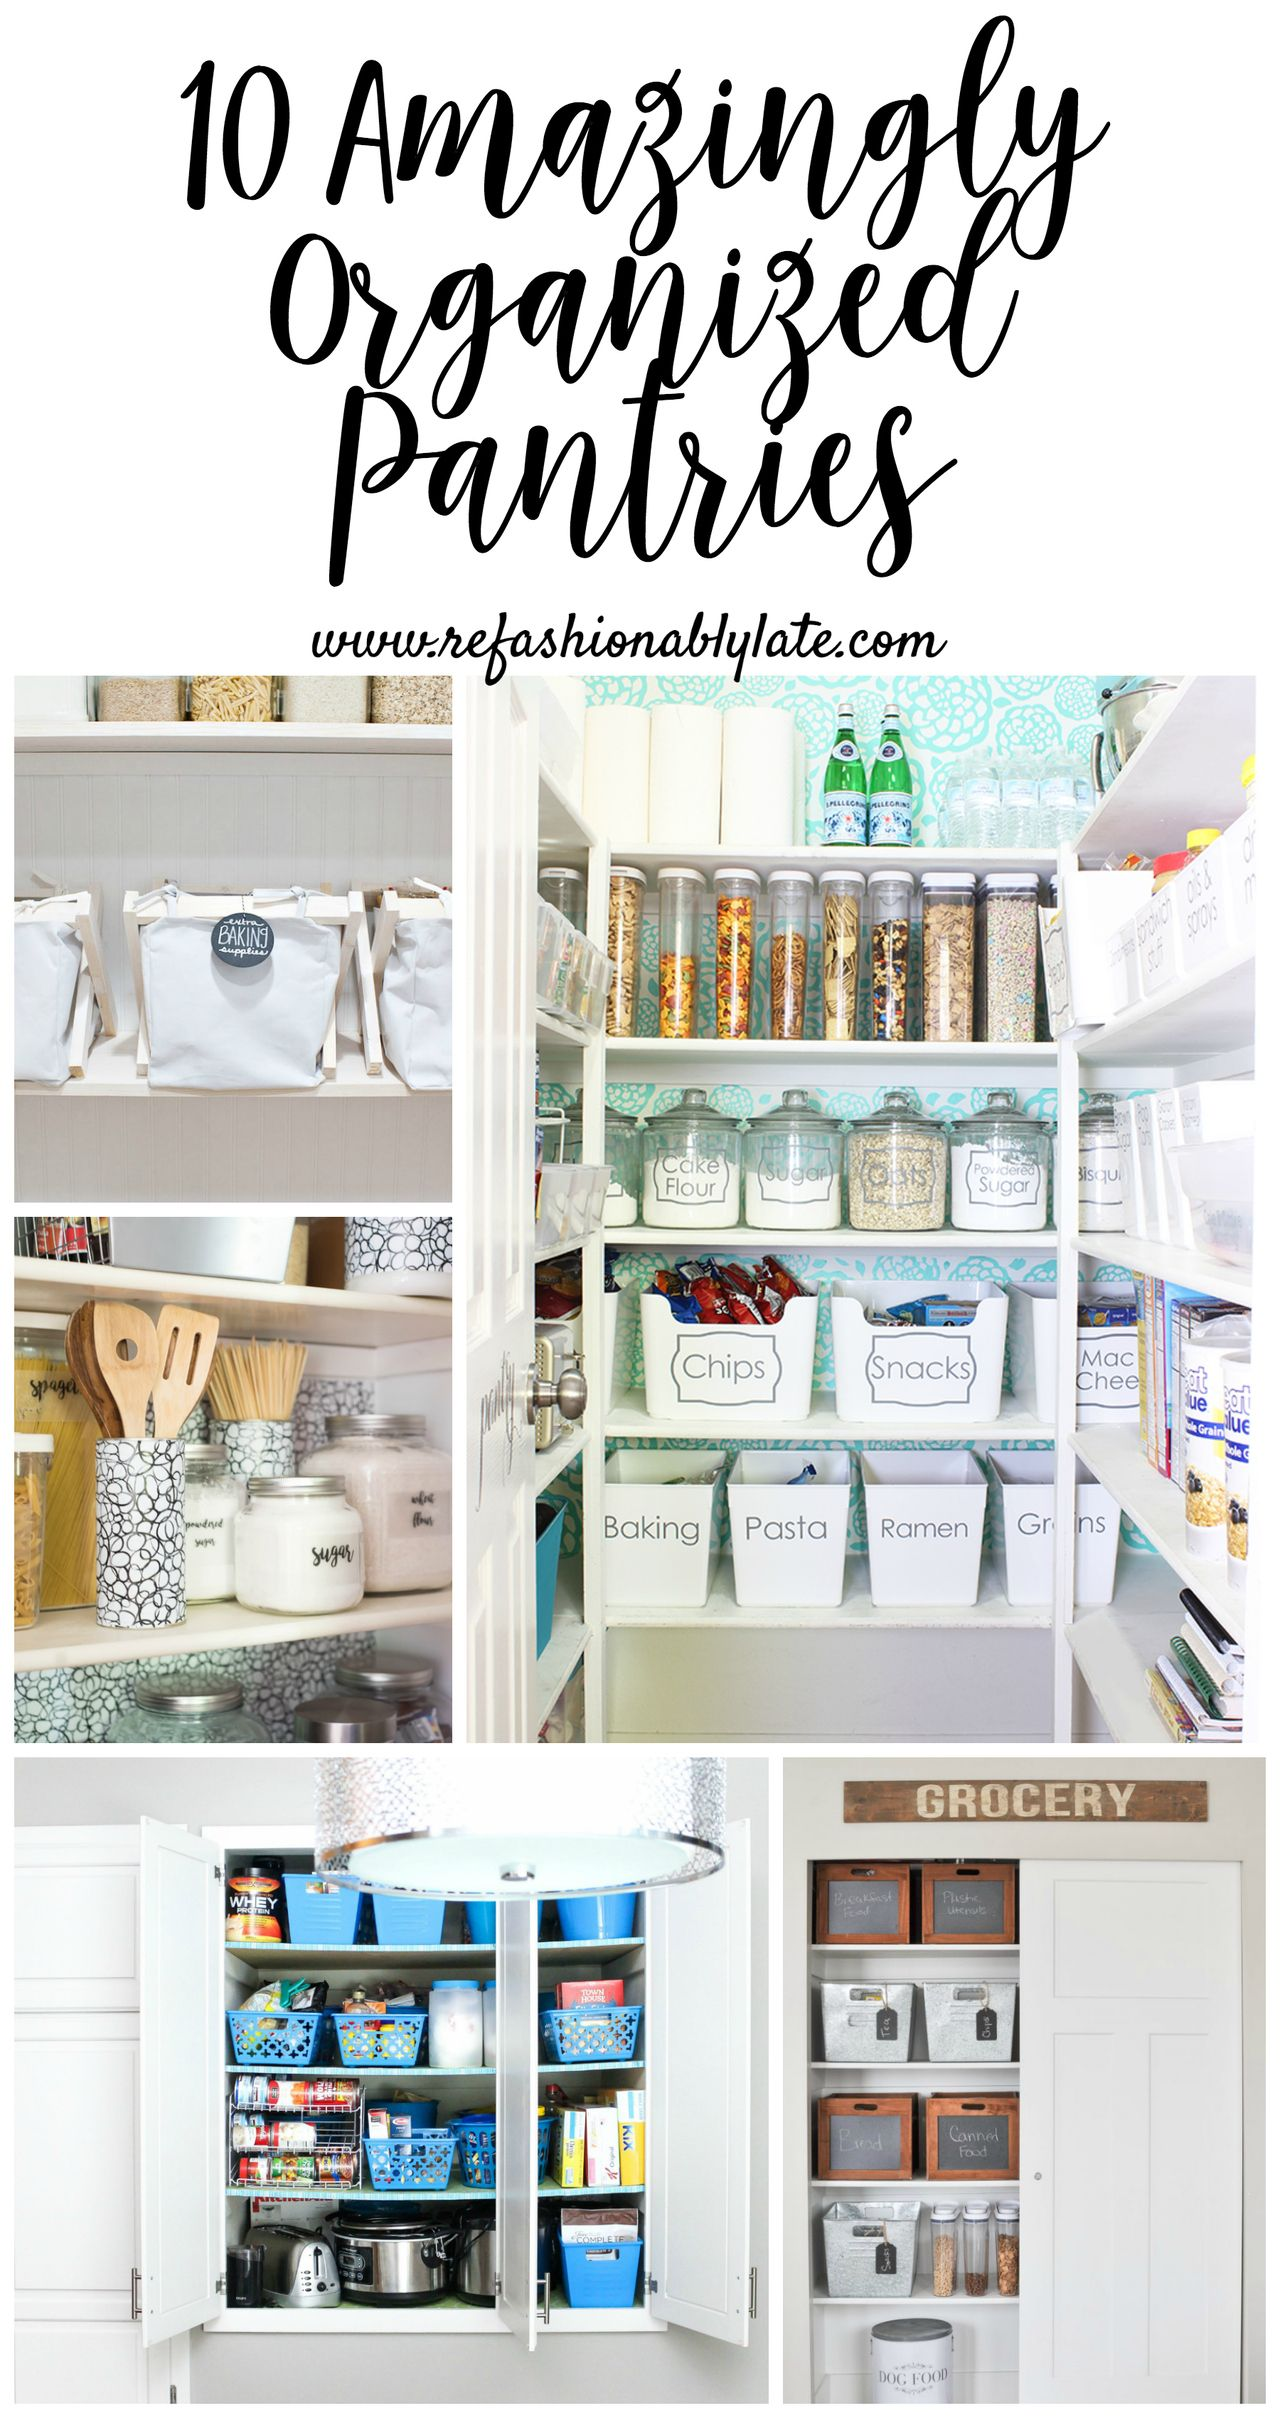 10 amazingly organized pantries for your viewing pleasure. They aren't just organized but pretty too! Who else feels the need to get everything organized right now!? http://refashionablylate.com/2018/01/12/10-amazingly-organized-pantries/